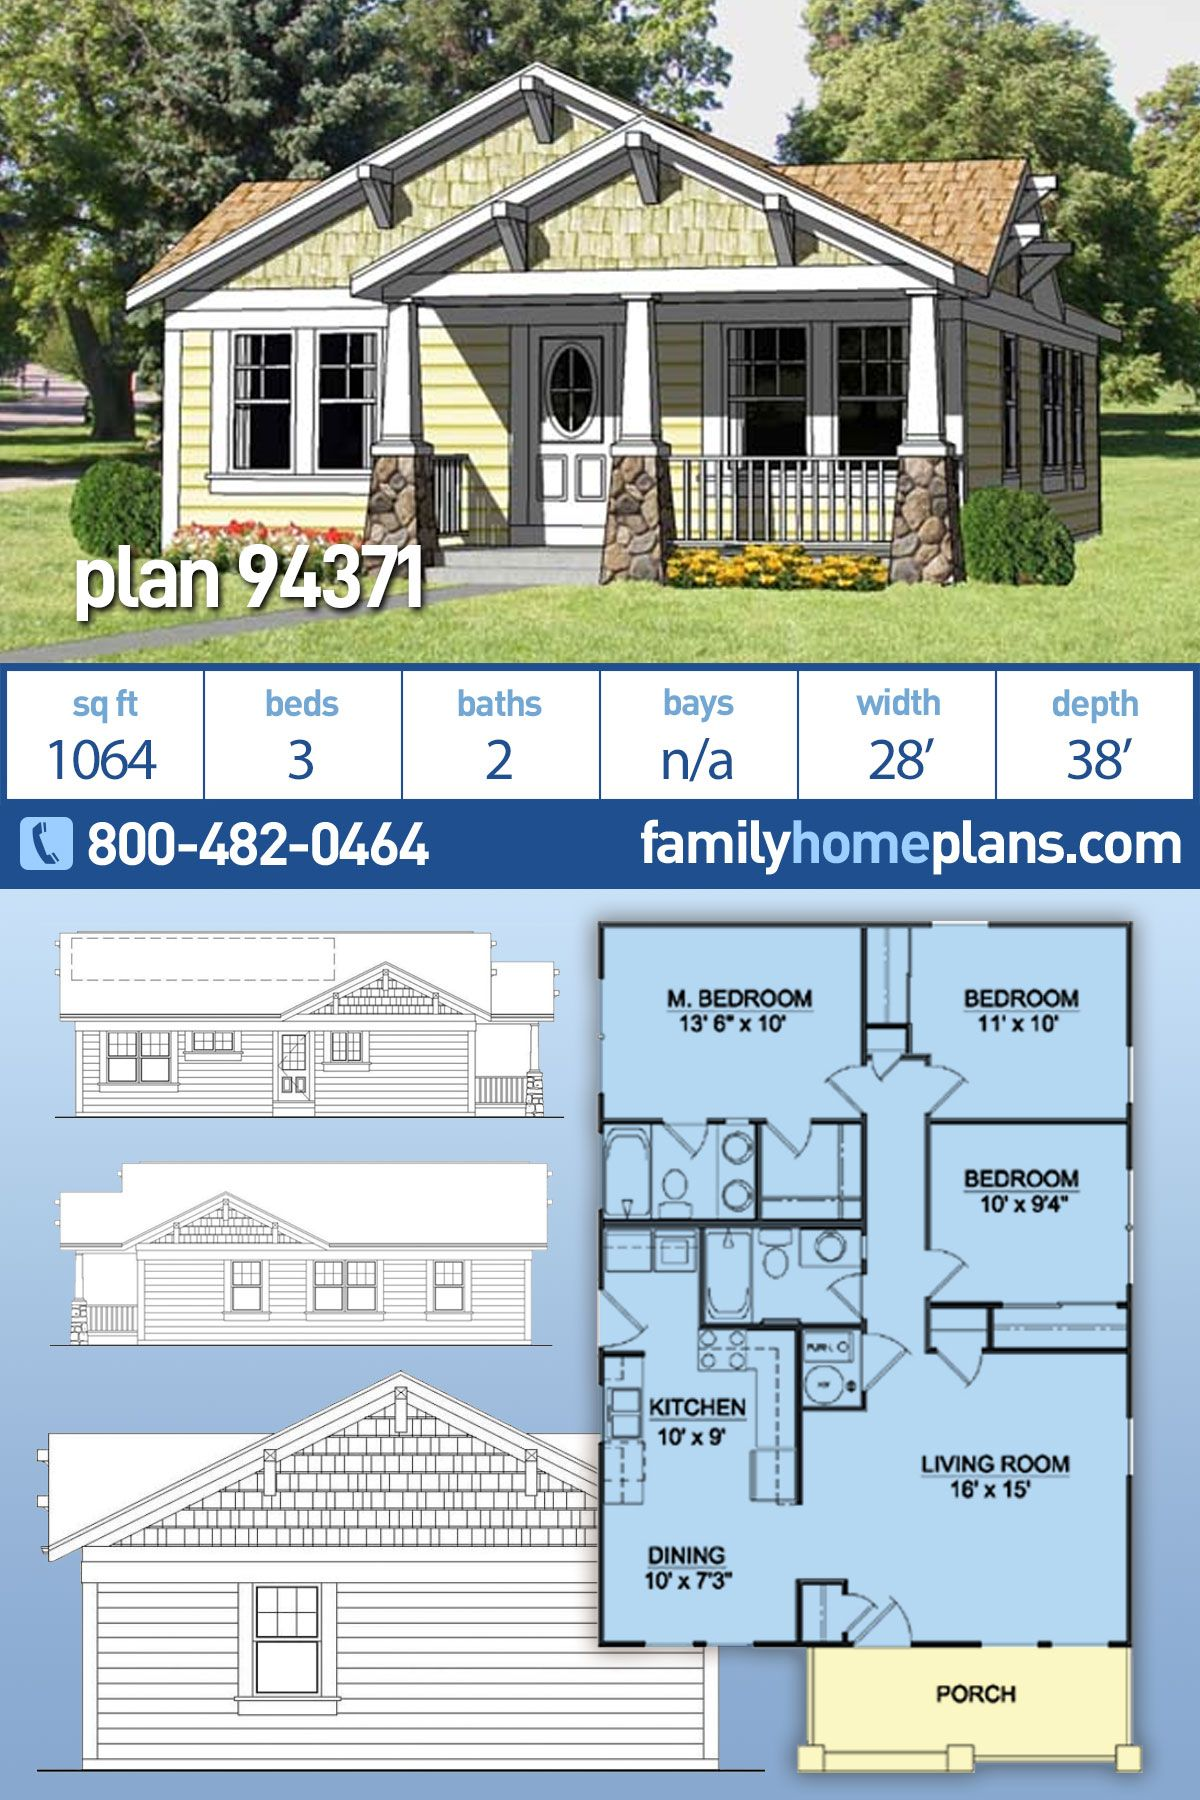 Craftsman Style House Plan 94371 With 3 Bed 2 Bath Craftsman